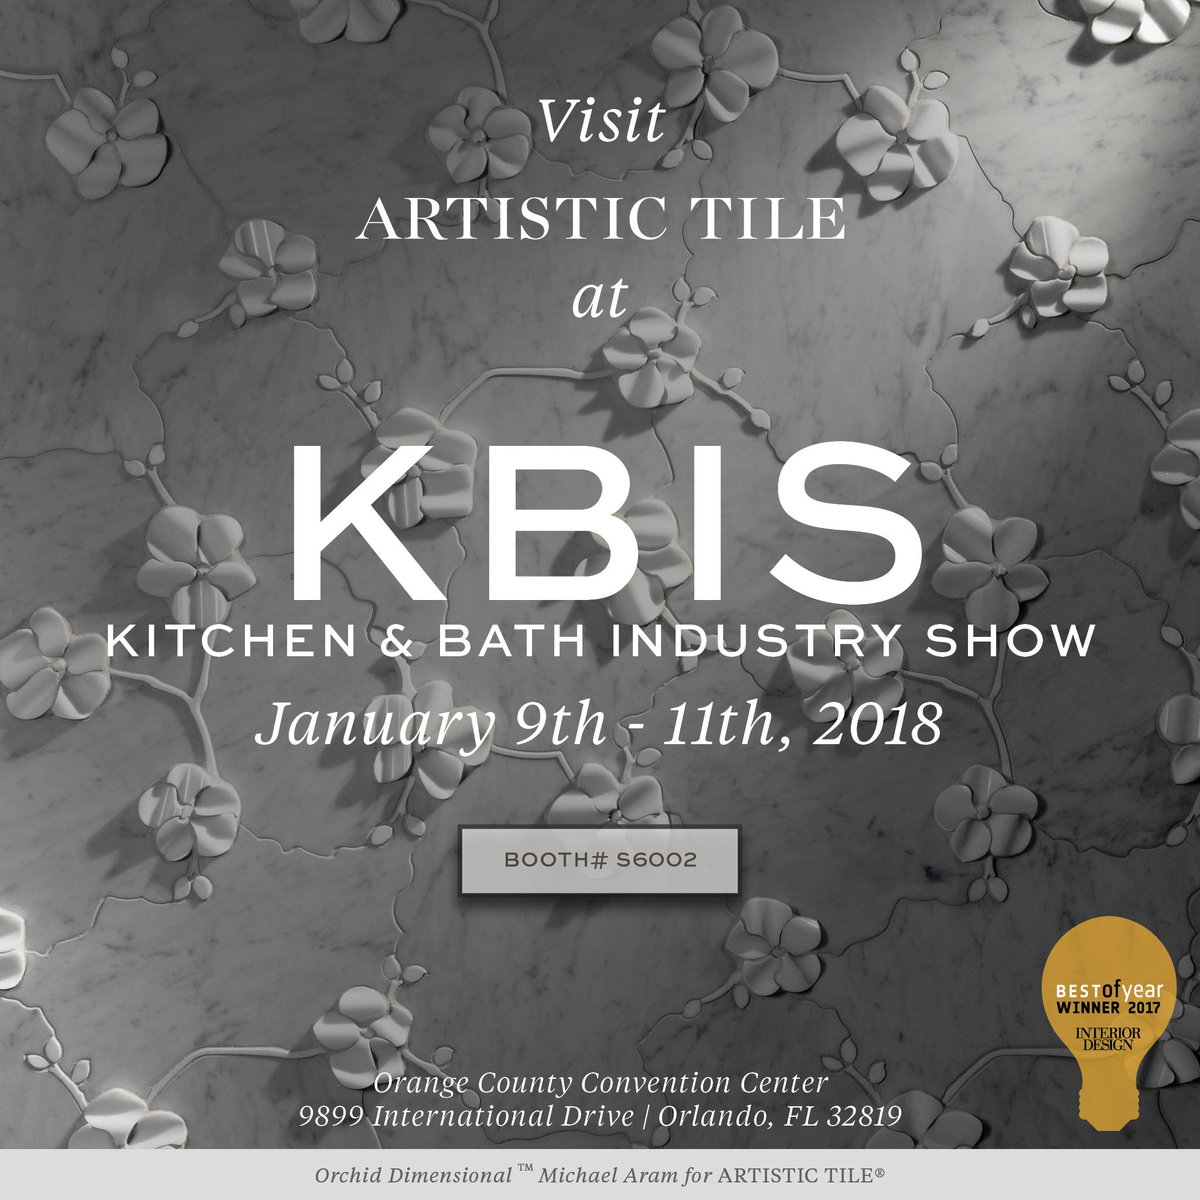 Artistic Tile On Twitter Heading To Orlando For Kbis This Week Take A K At Our Upcoming Releases Booth S6002